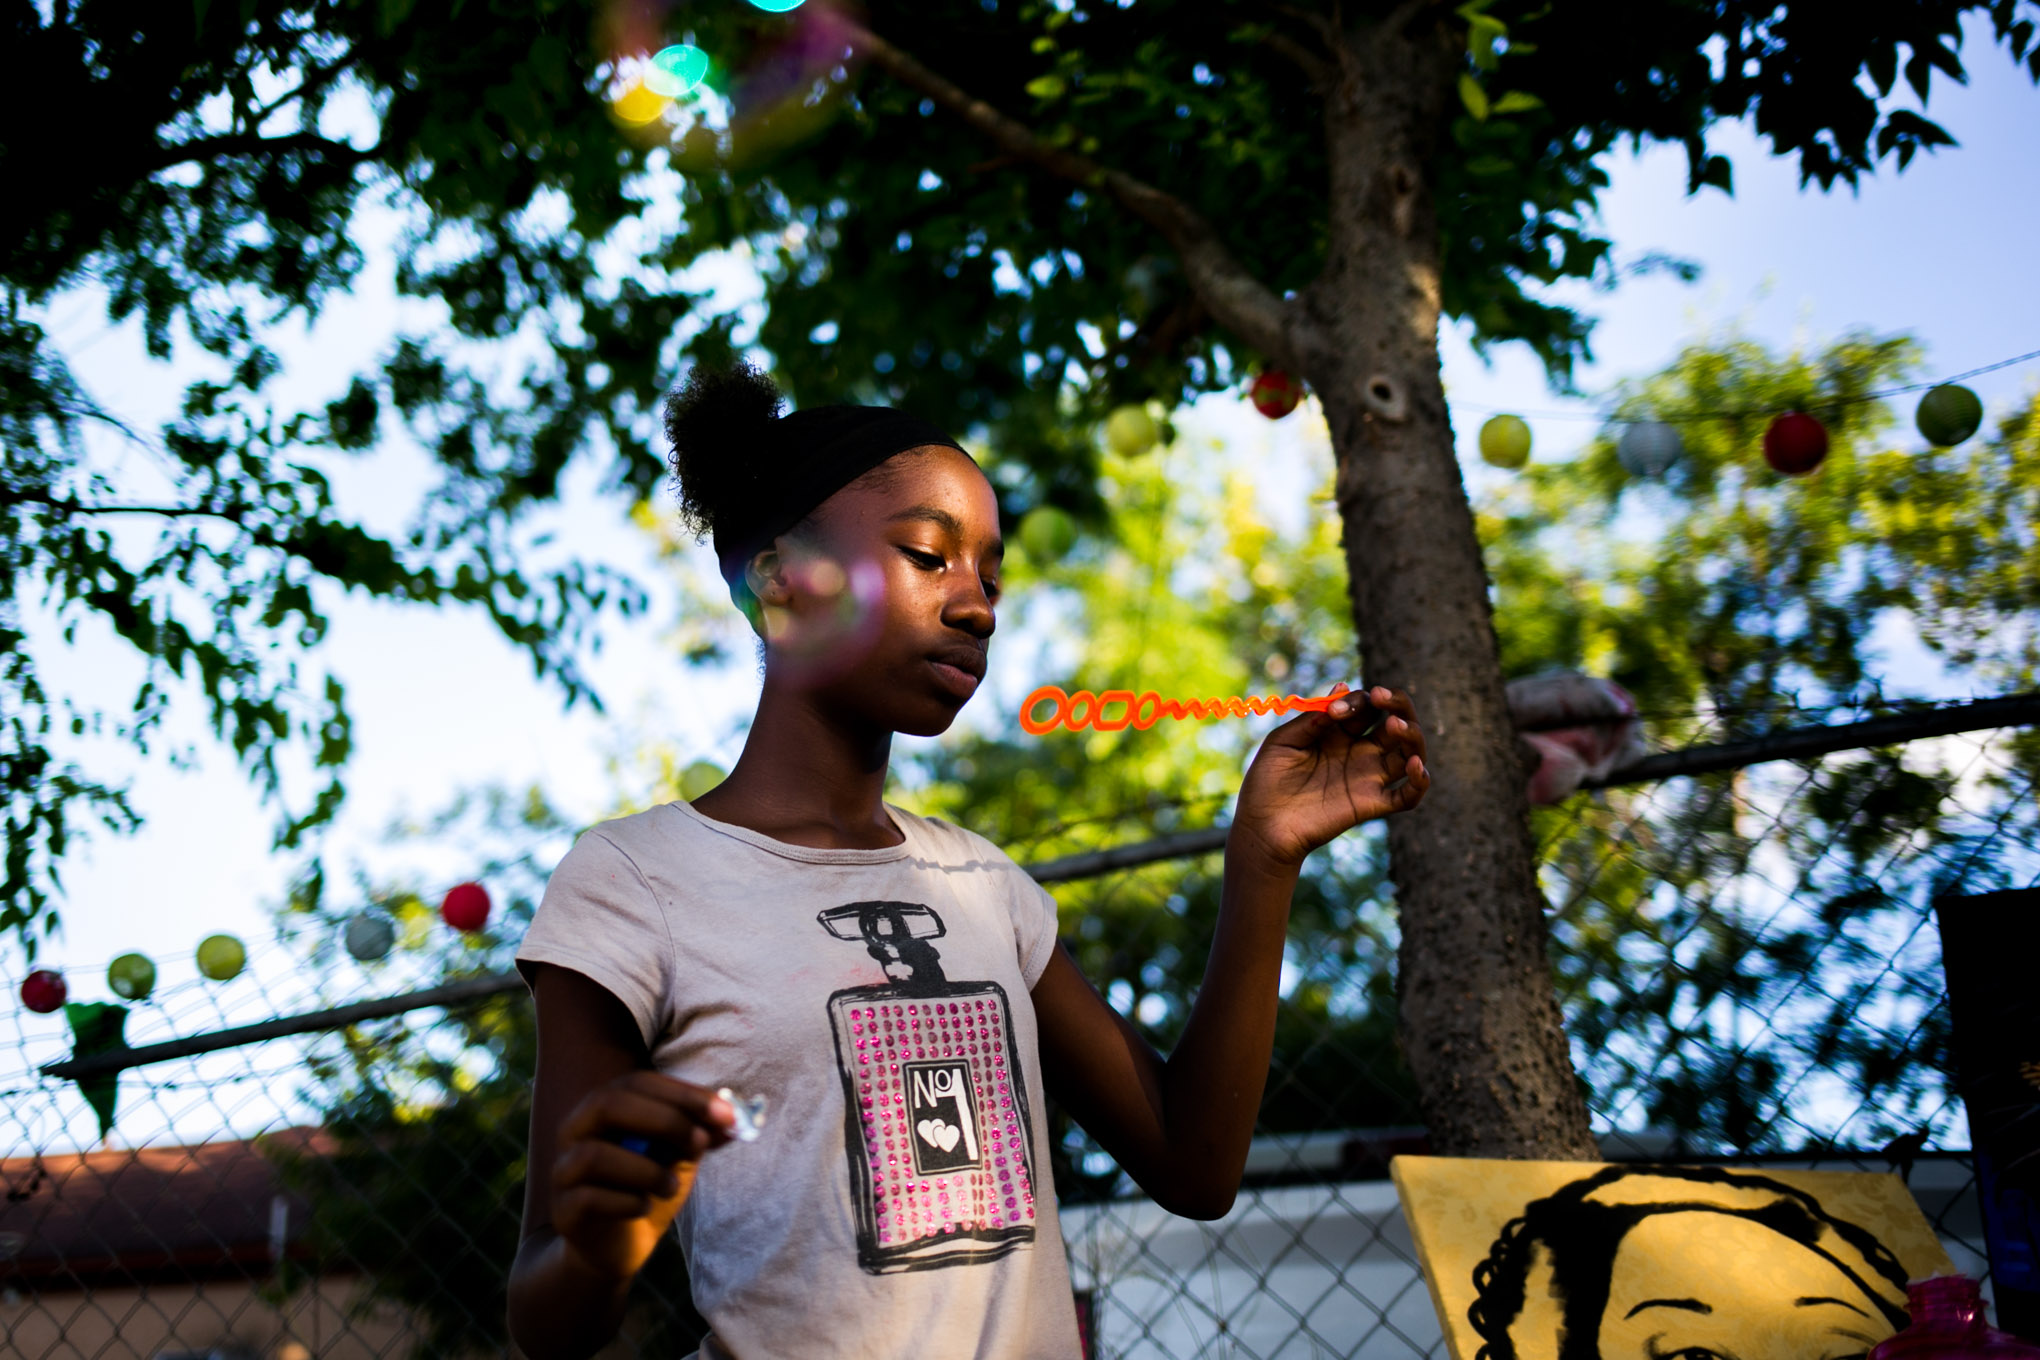 Breonna plays with bubbles at Gardopia's one-year anniversary party. Photo by Kathryn Boyd-Batstone.